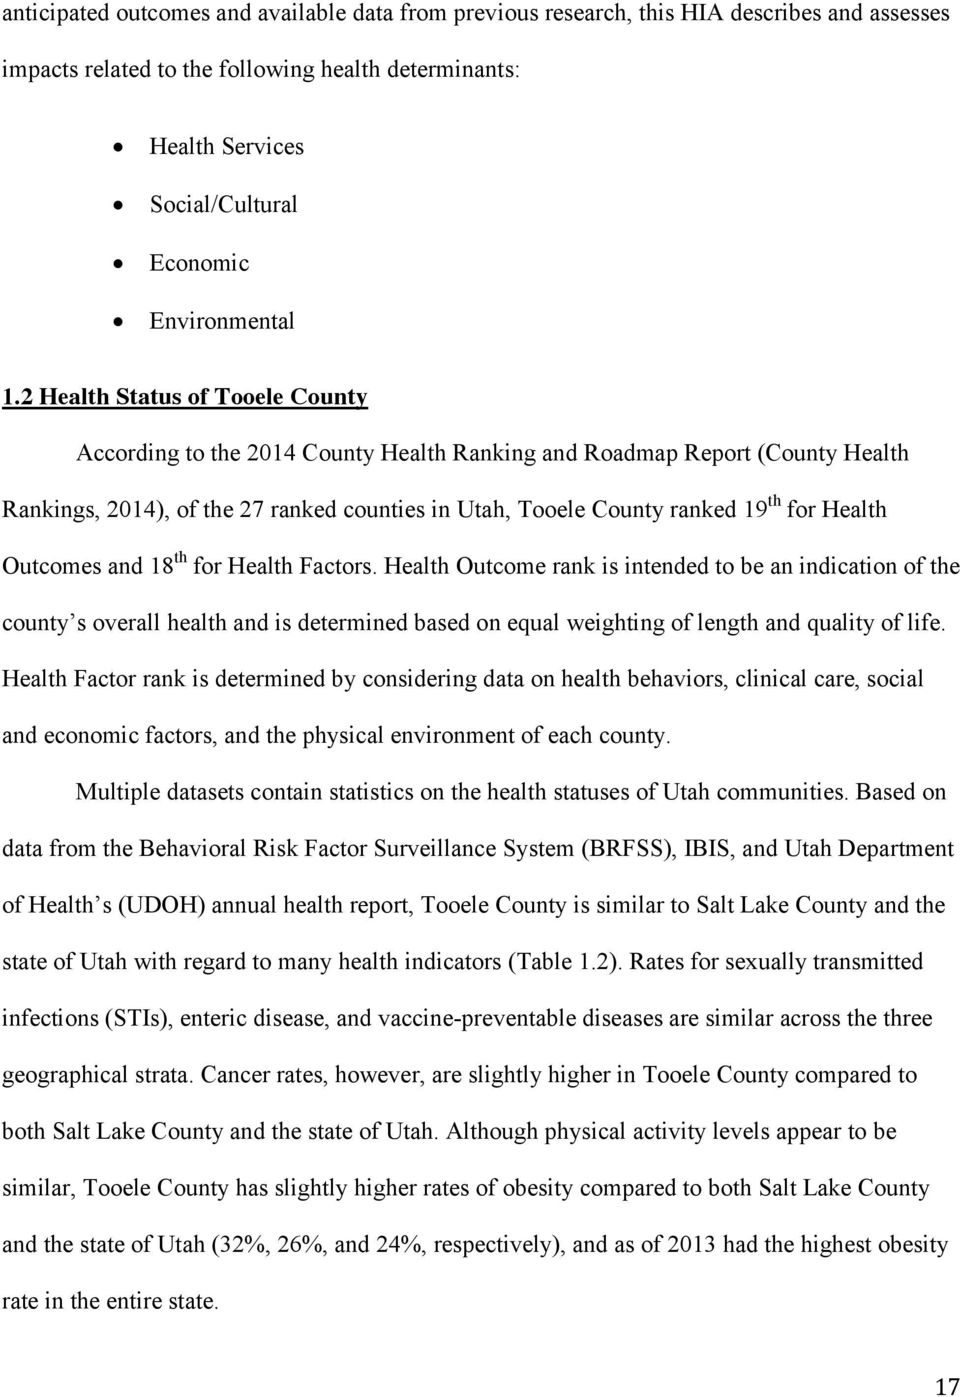 2 Health Status of Tooele County According to the 2014 County Health Ranking and Roadmap Report (County Health Rankings, 2014), of the 27 ranked counties in Utah, Tooele County ranked 19 th for